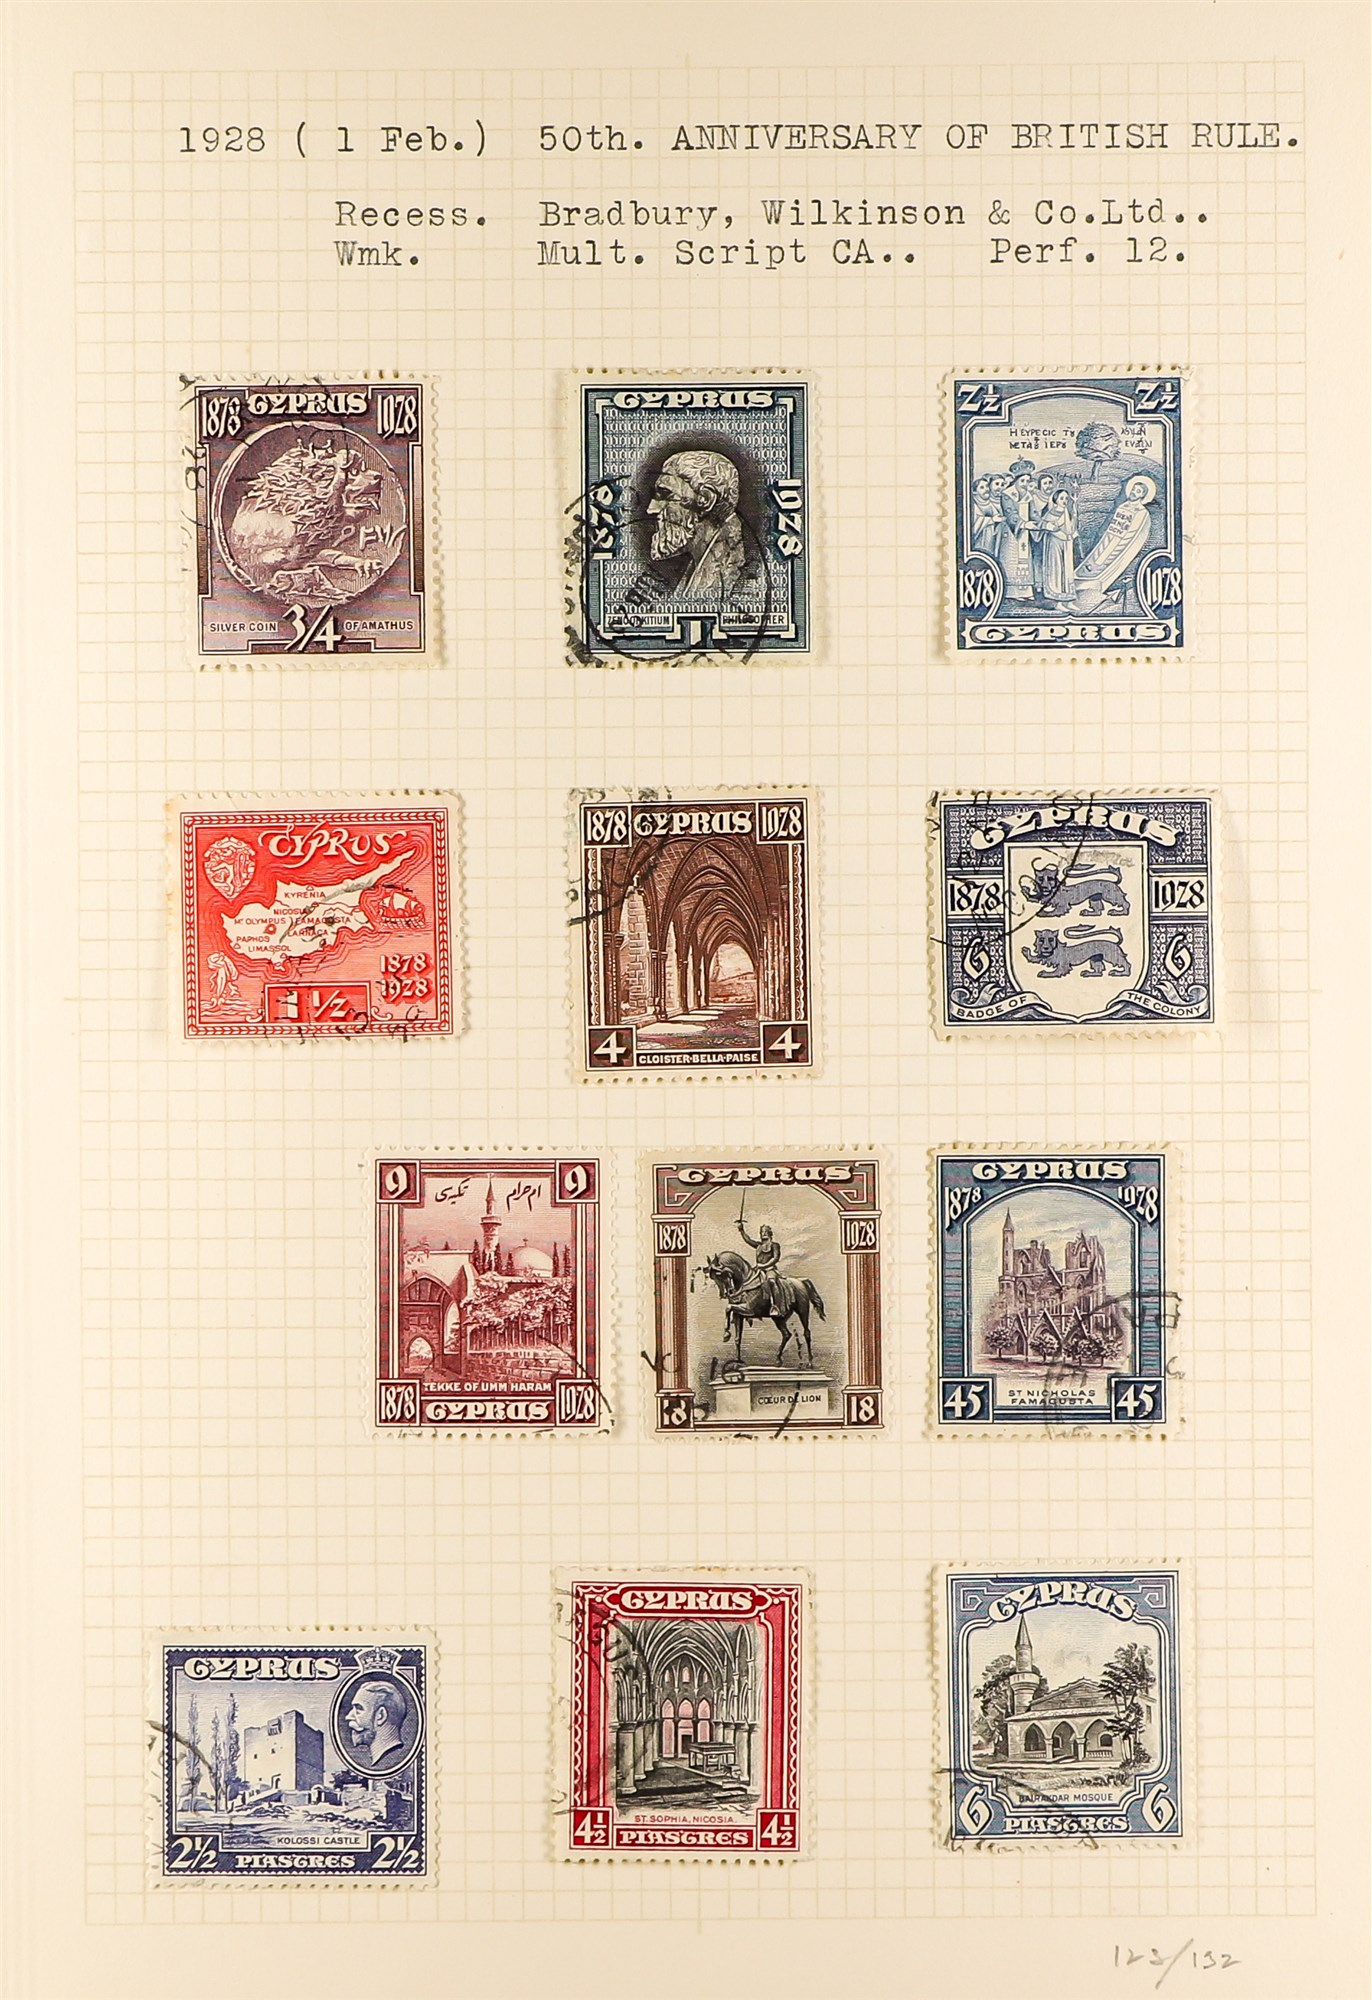 CYPRUS 1880-1935 old used collection incl. 1880 GB overprints including 2½d & ½d plate 15 used,